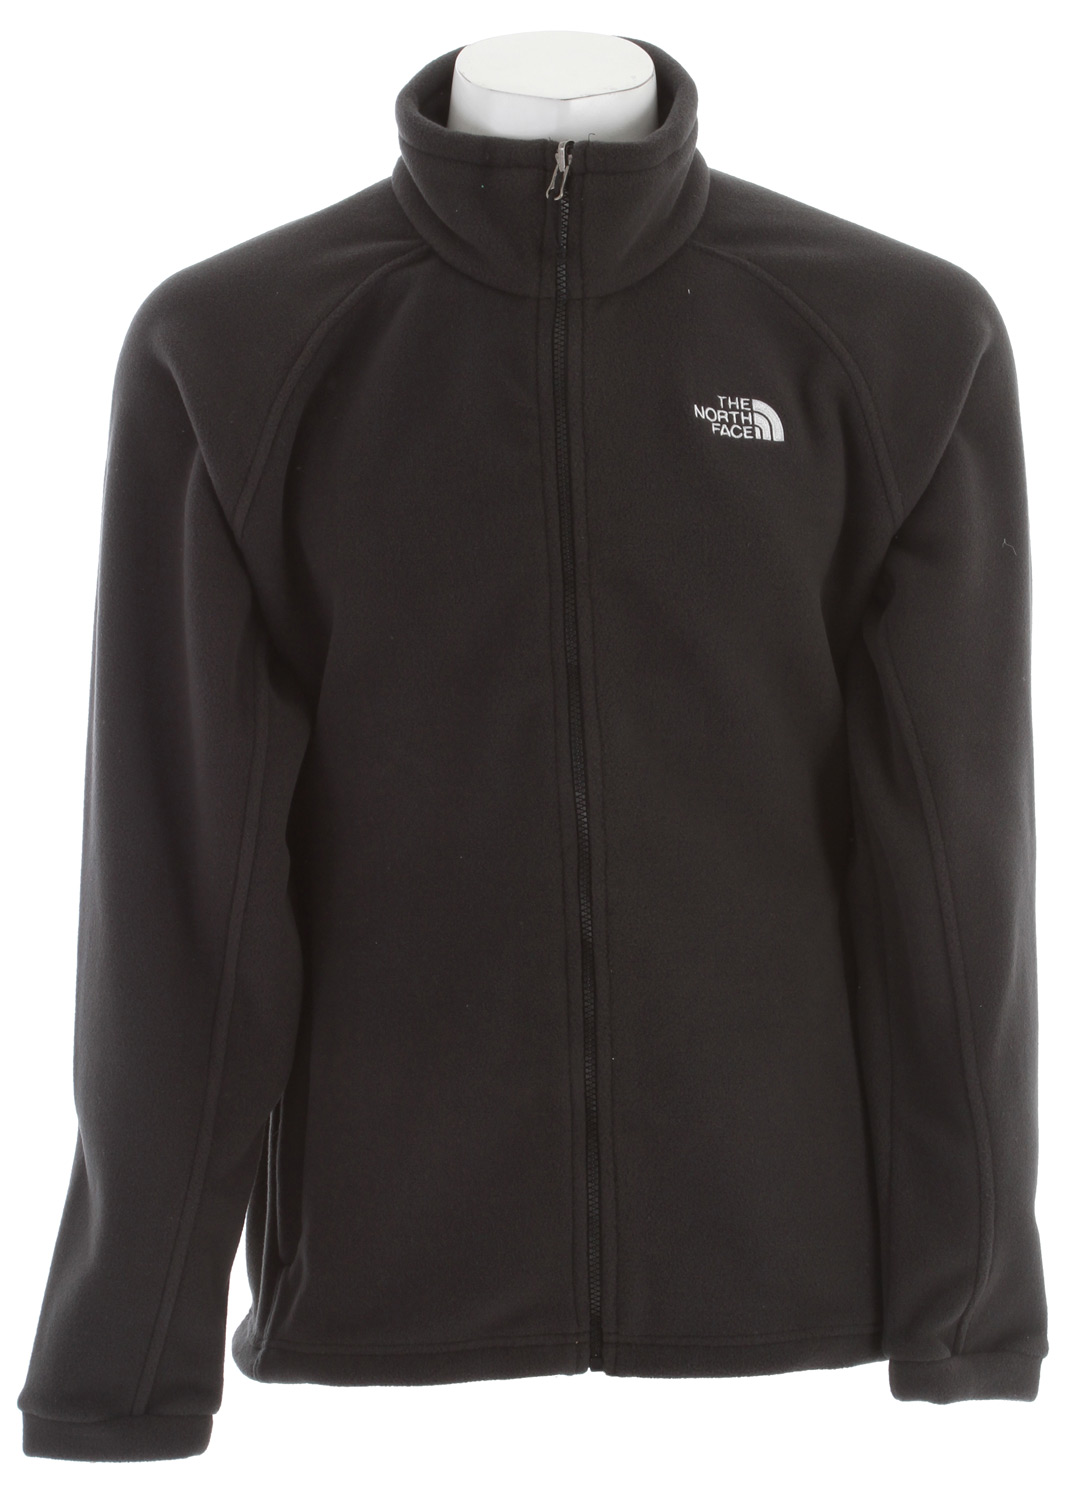 Highly versatile, relaxed-fit jacket offers dependable protection from the coldKey Features of The North Face Khumbu Jacket: Zip-in compatible integration with complementing garments from The North Face Extremely durable, anti-pill surface Two hand pockets Full-front zip with windflap Hem cinch-cord - $90.00